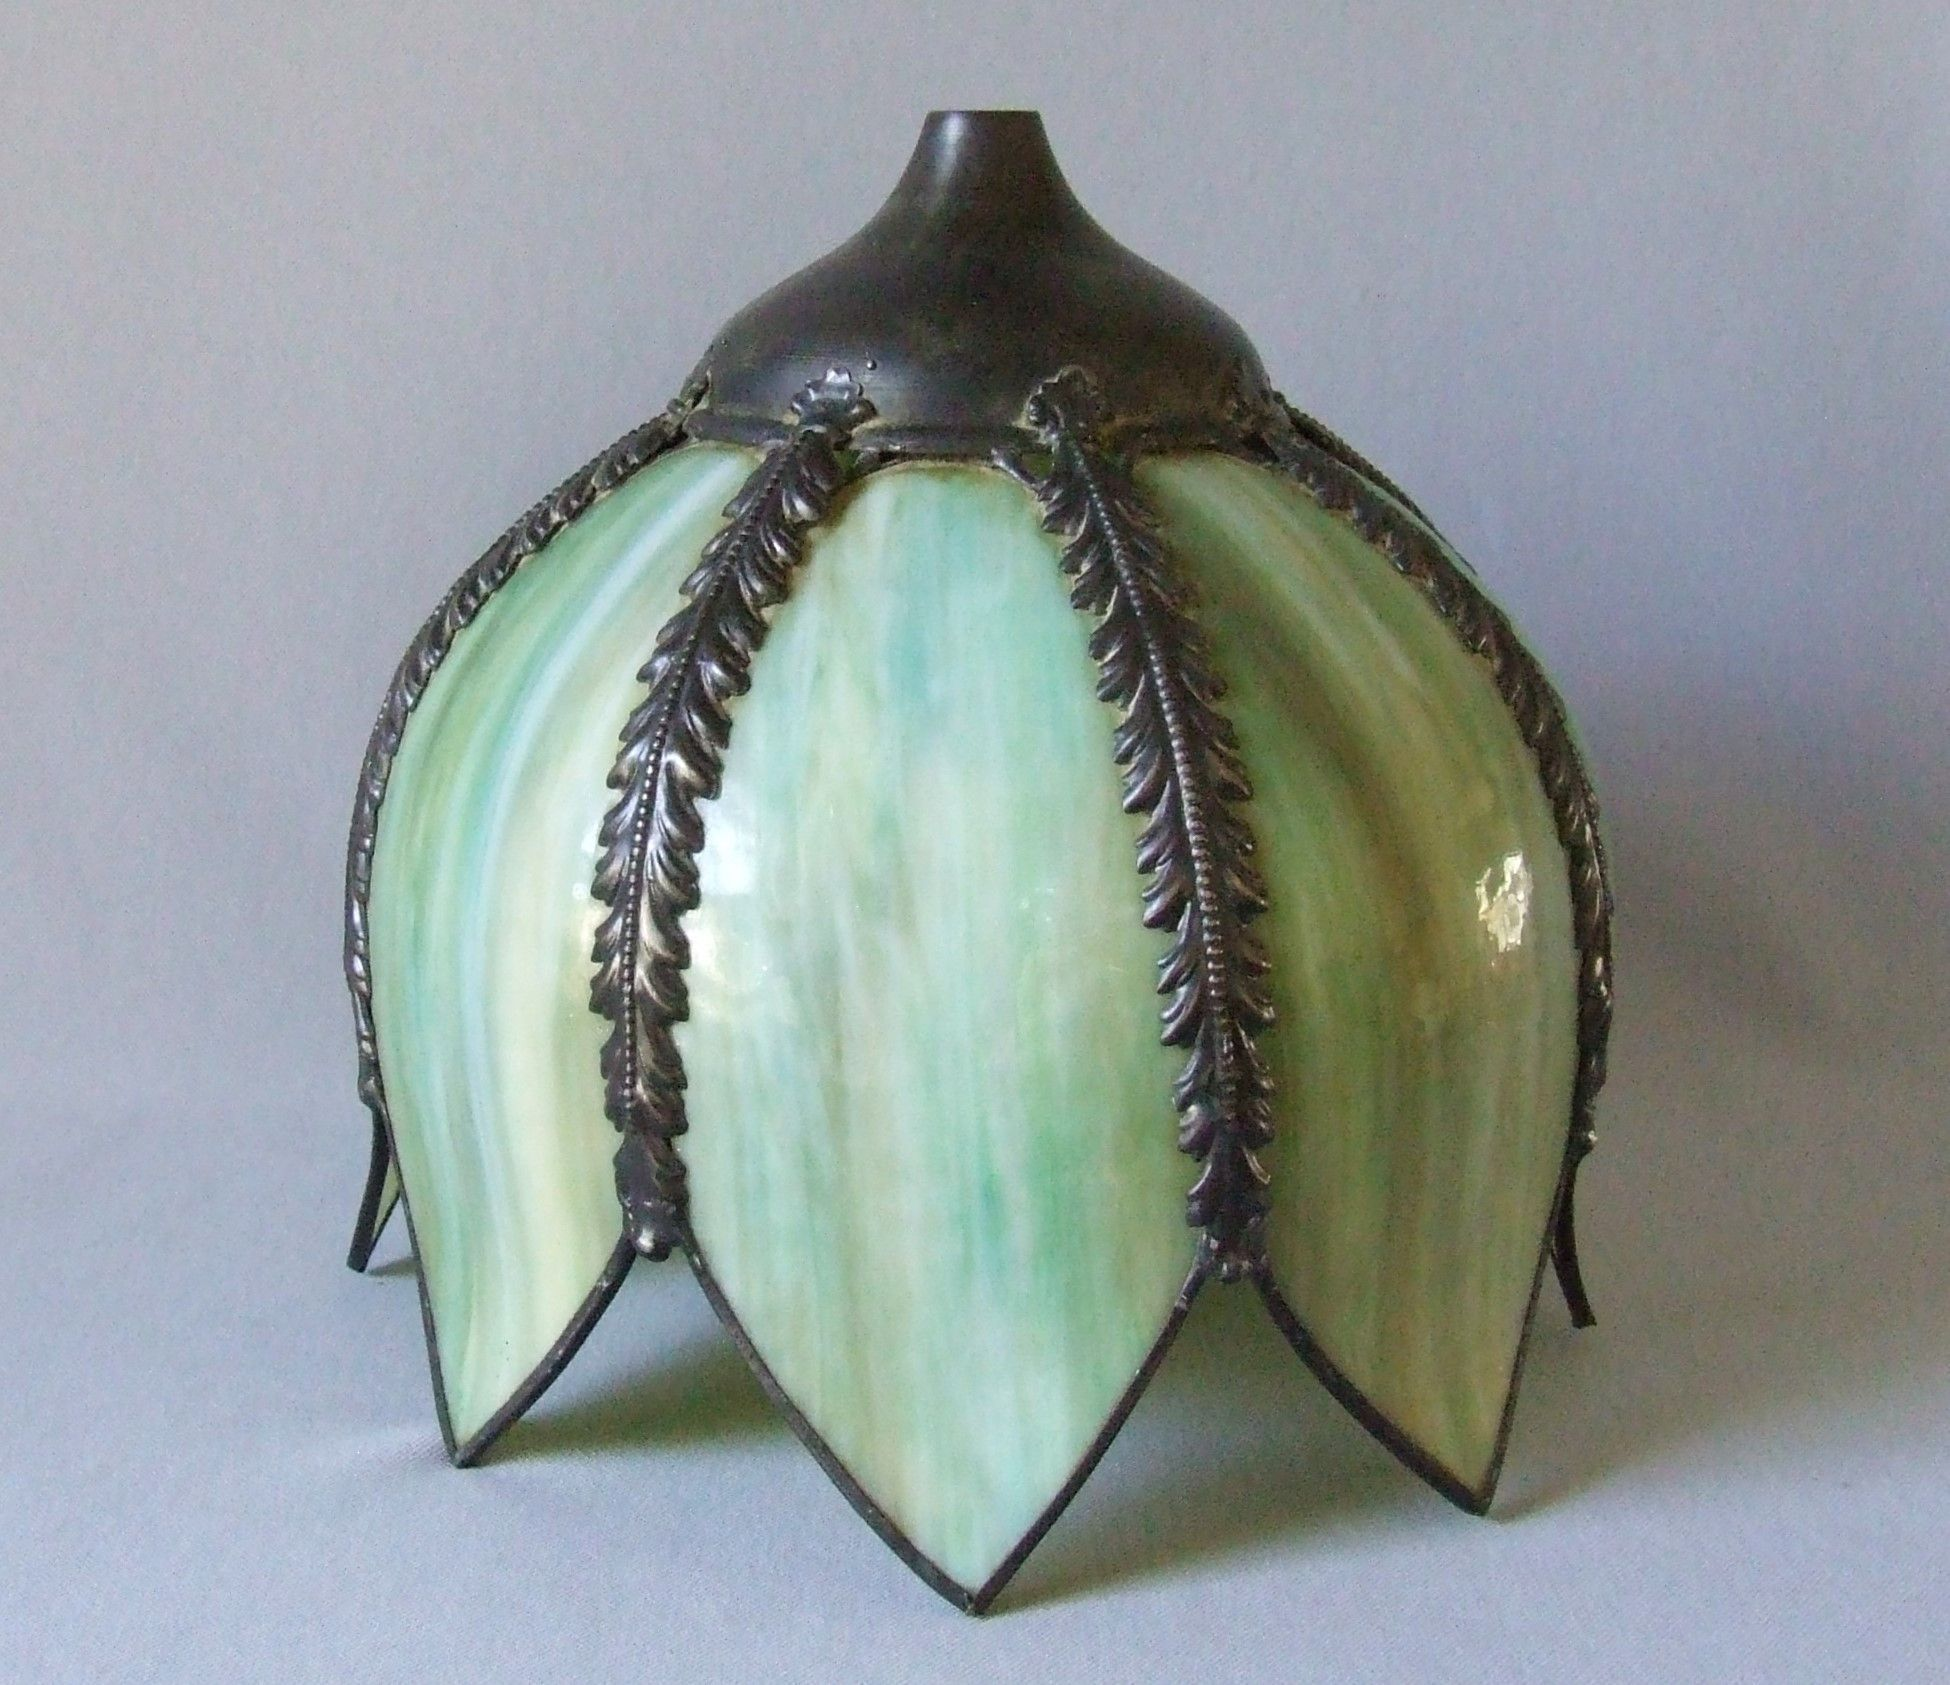 Vintage Green Slag Stained Glass Tulip Shade For Light